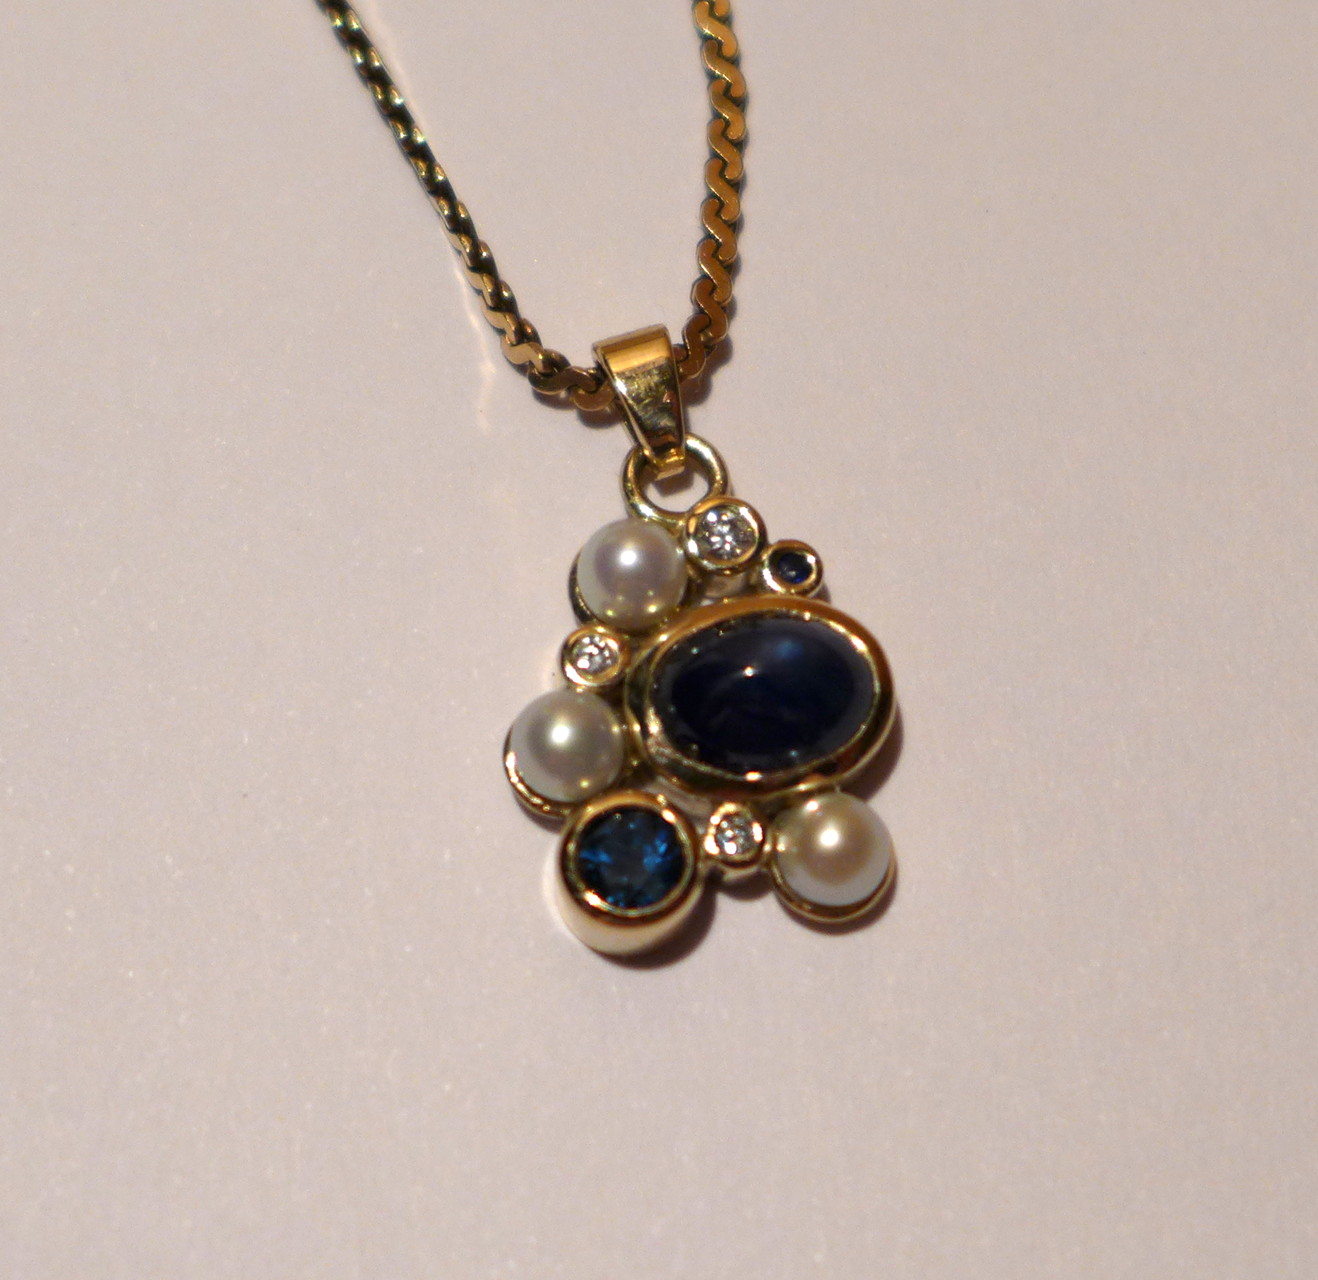 Pendant, 14k yellow gold, sapphires, diamonds, freshwater pearls